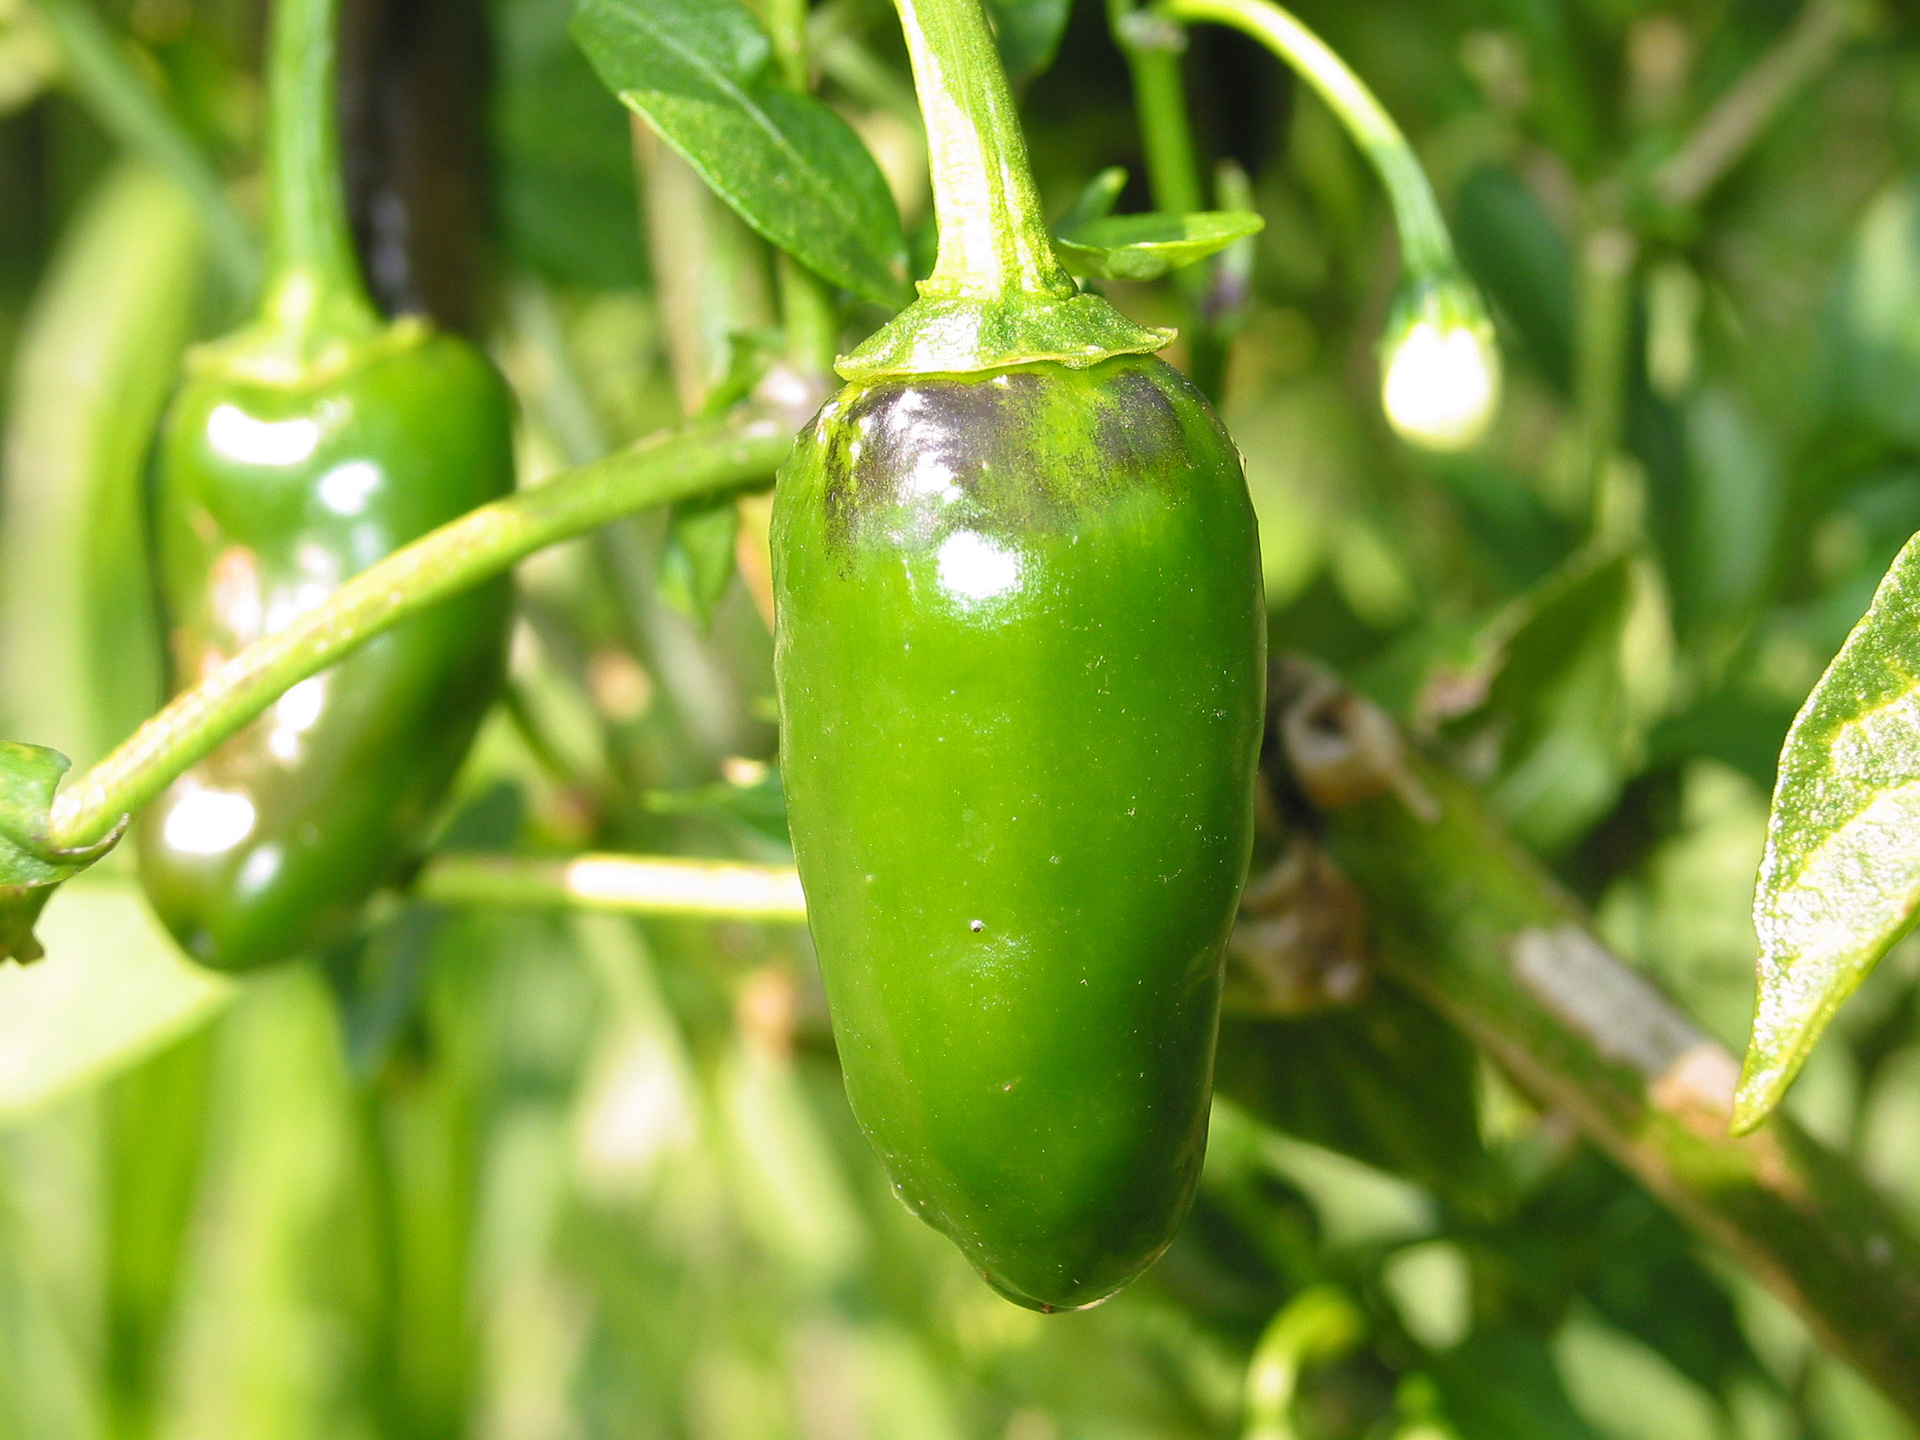 960564 - Capsicum annuum - Chilisorte